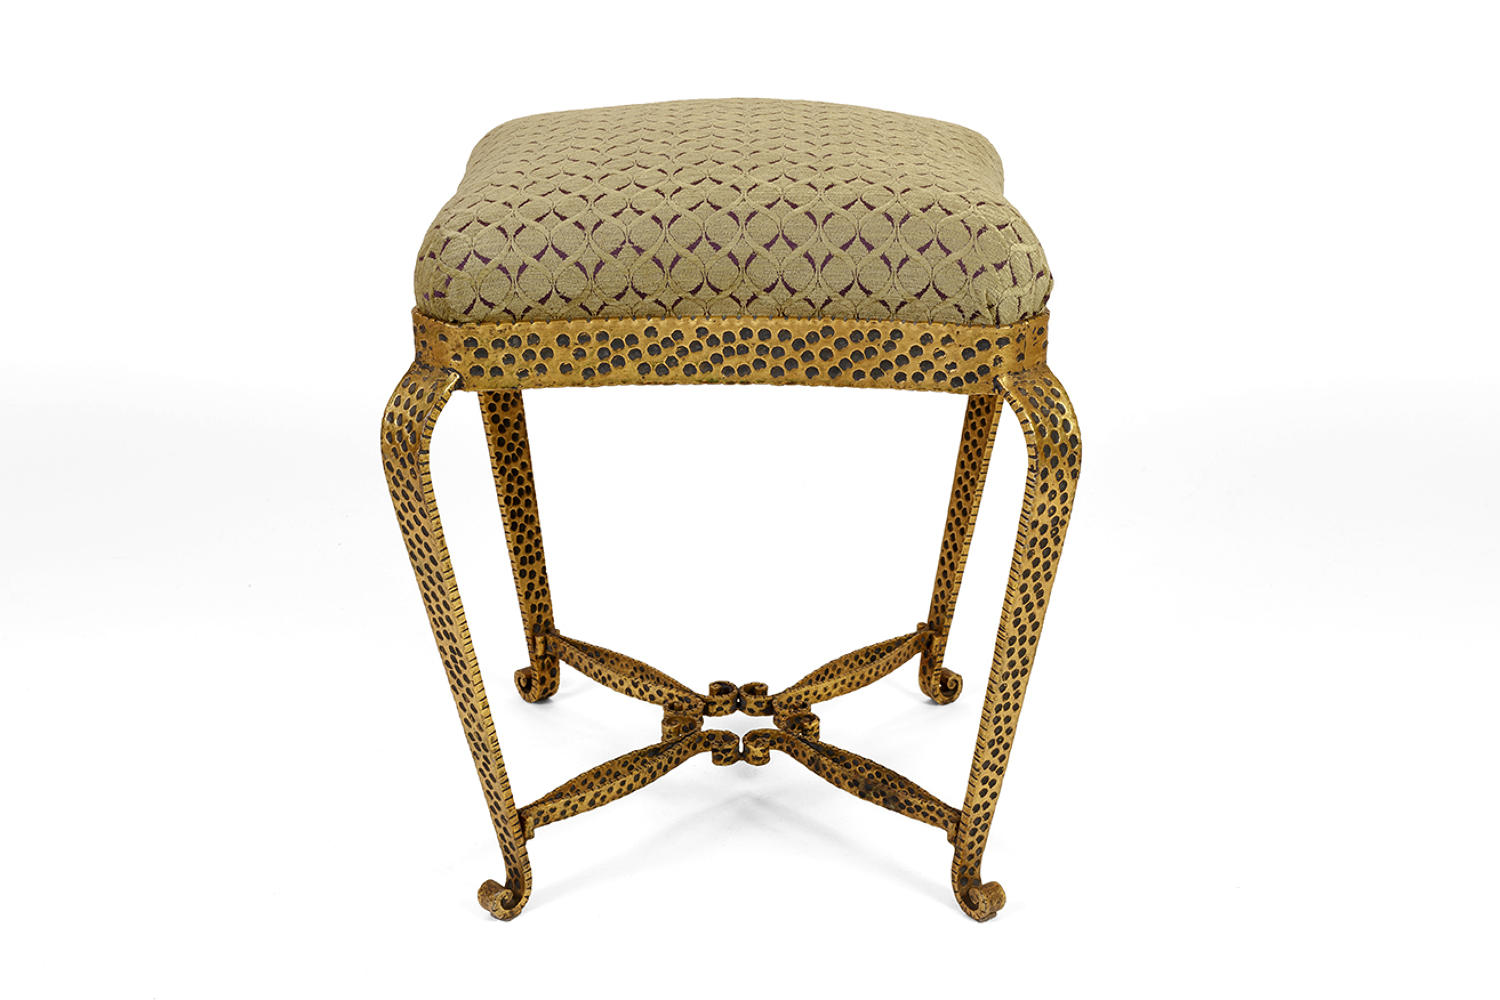 Gilt metal stool